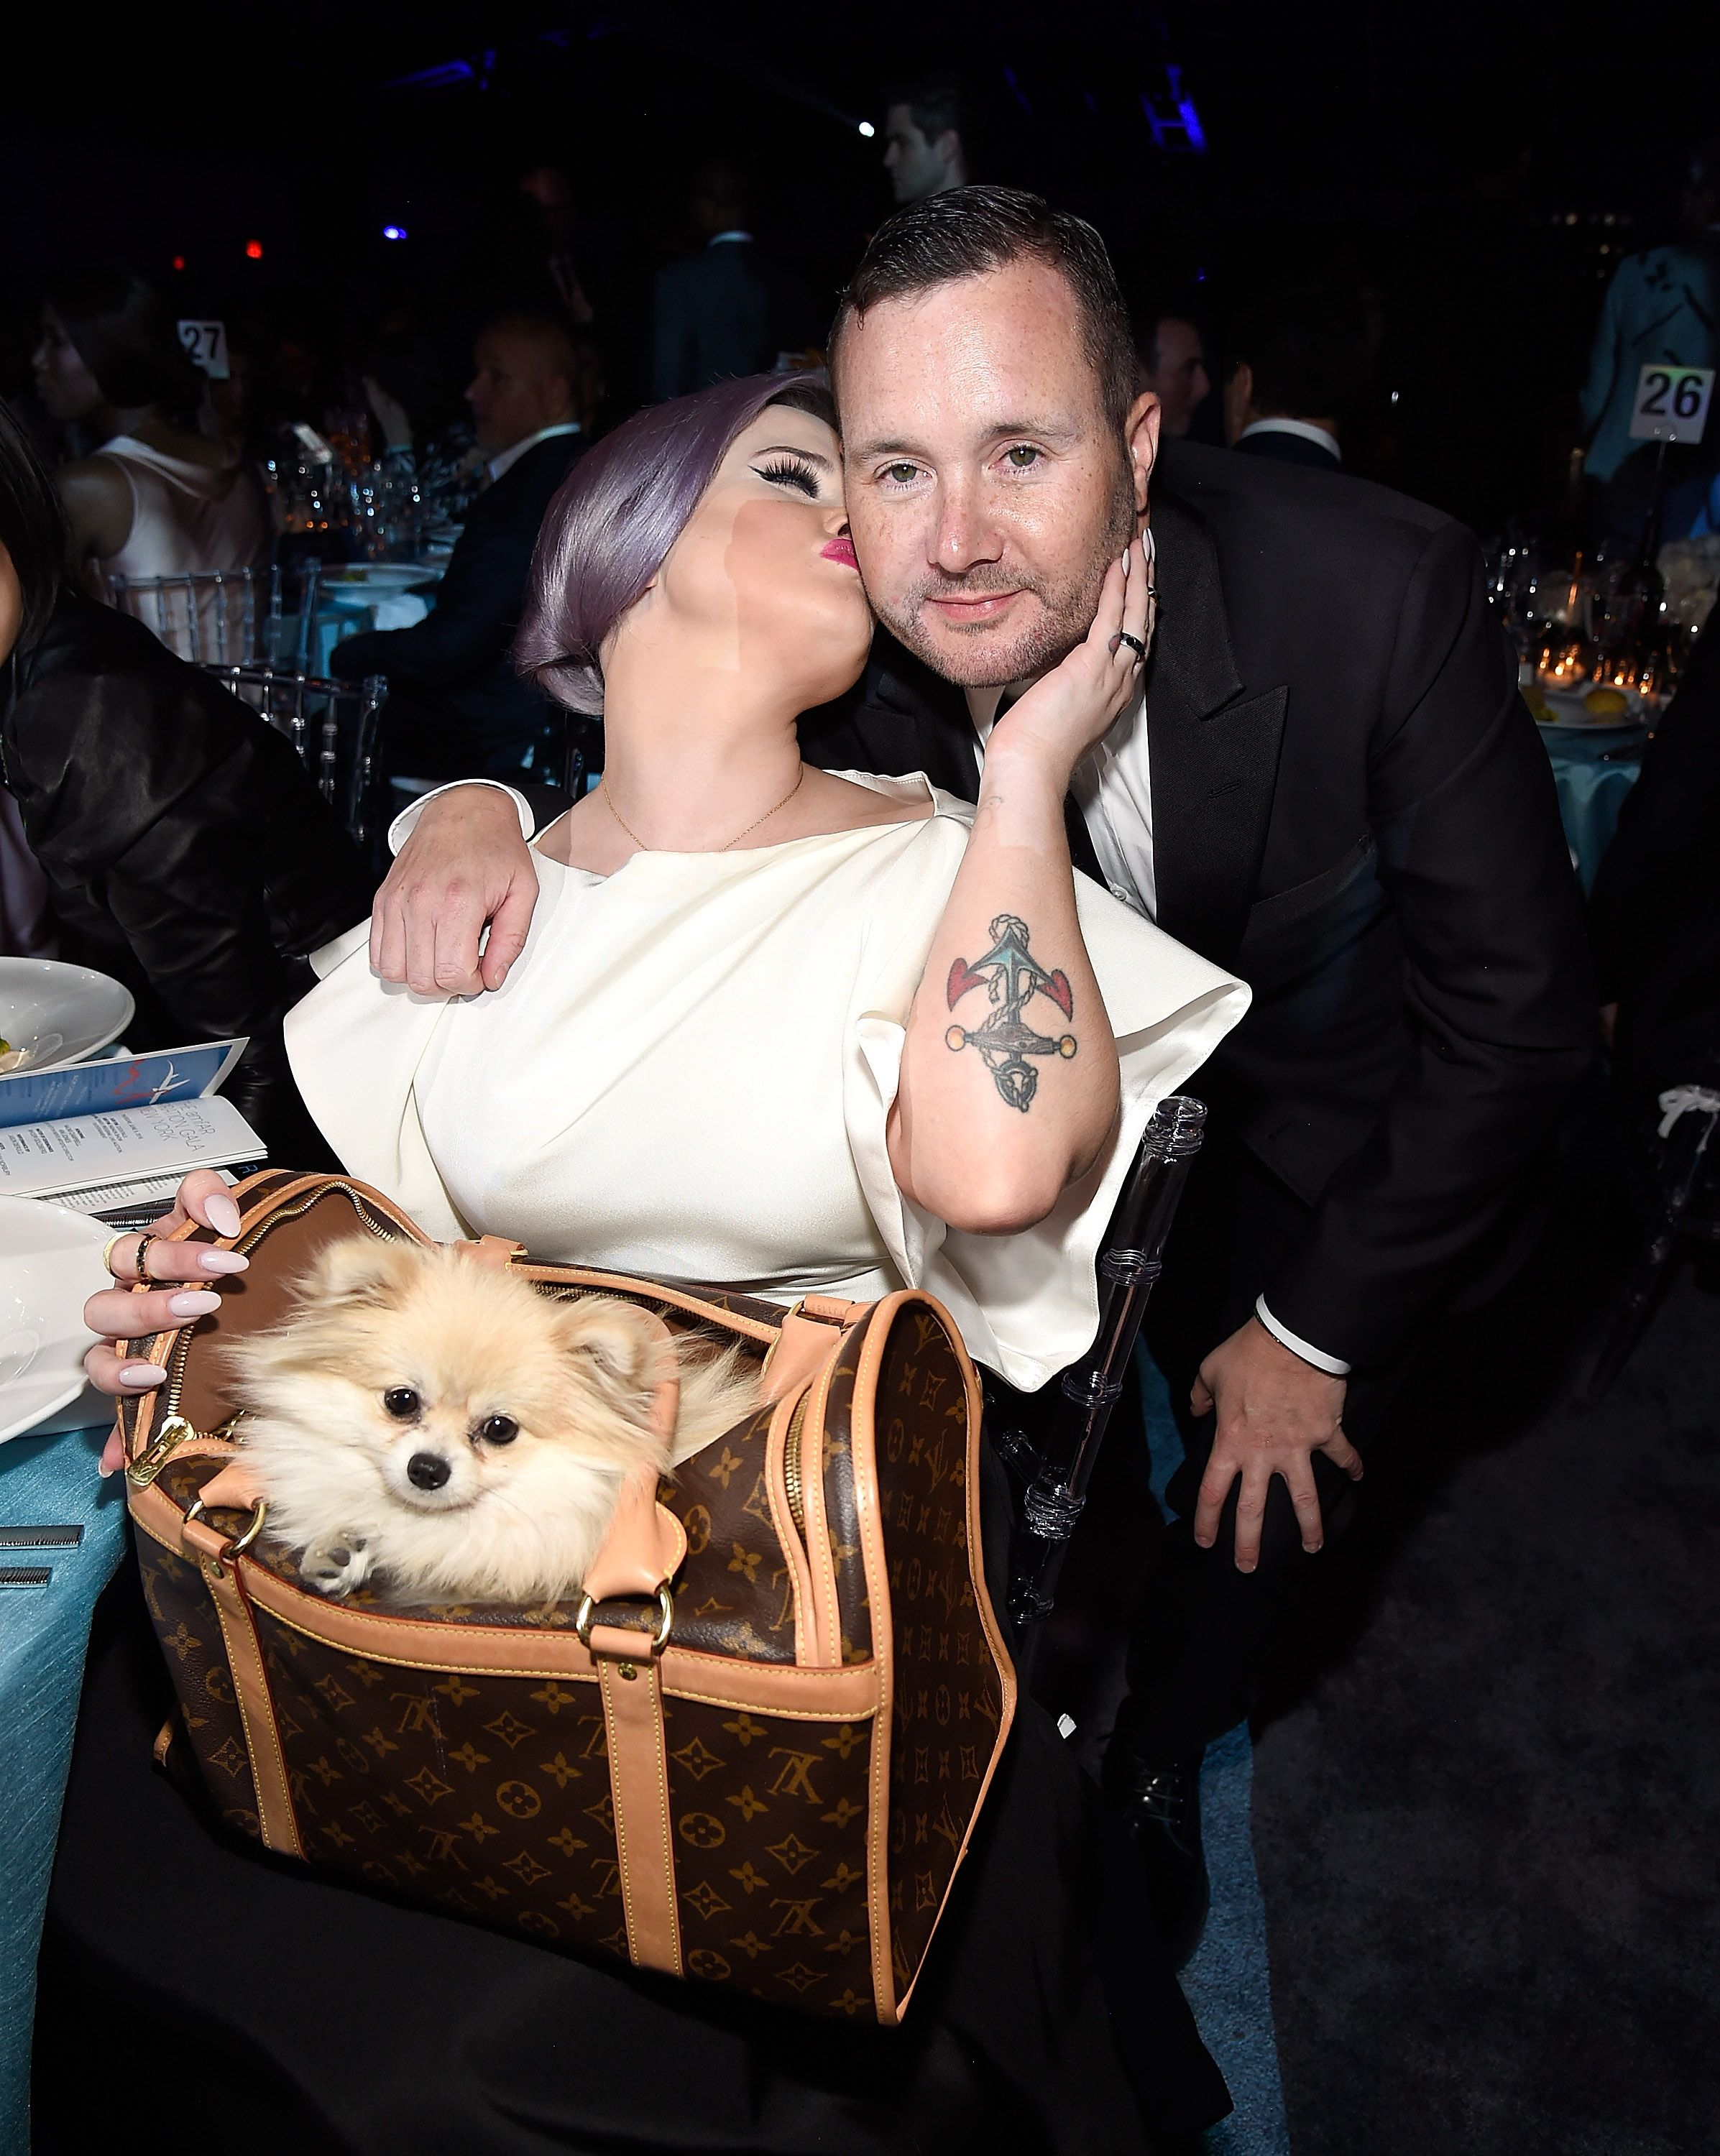 Kelly Osbourne and Kim Jones during the 7th Annual amfAR Inspiration Gala New York at Skylight at Moynihan Station on June 9, 2016 in New York City. | Source: Getty Images